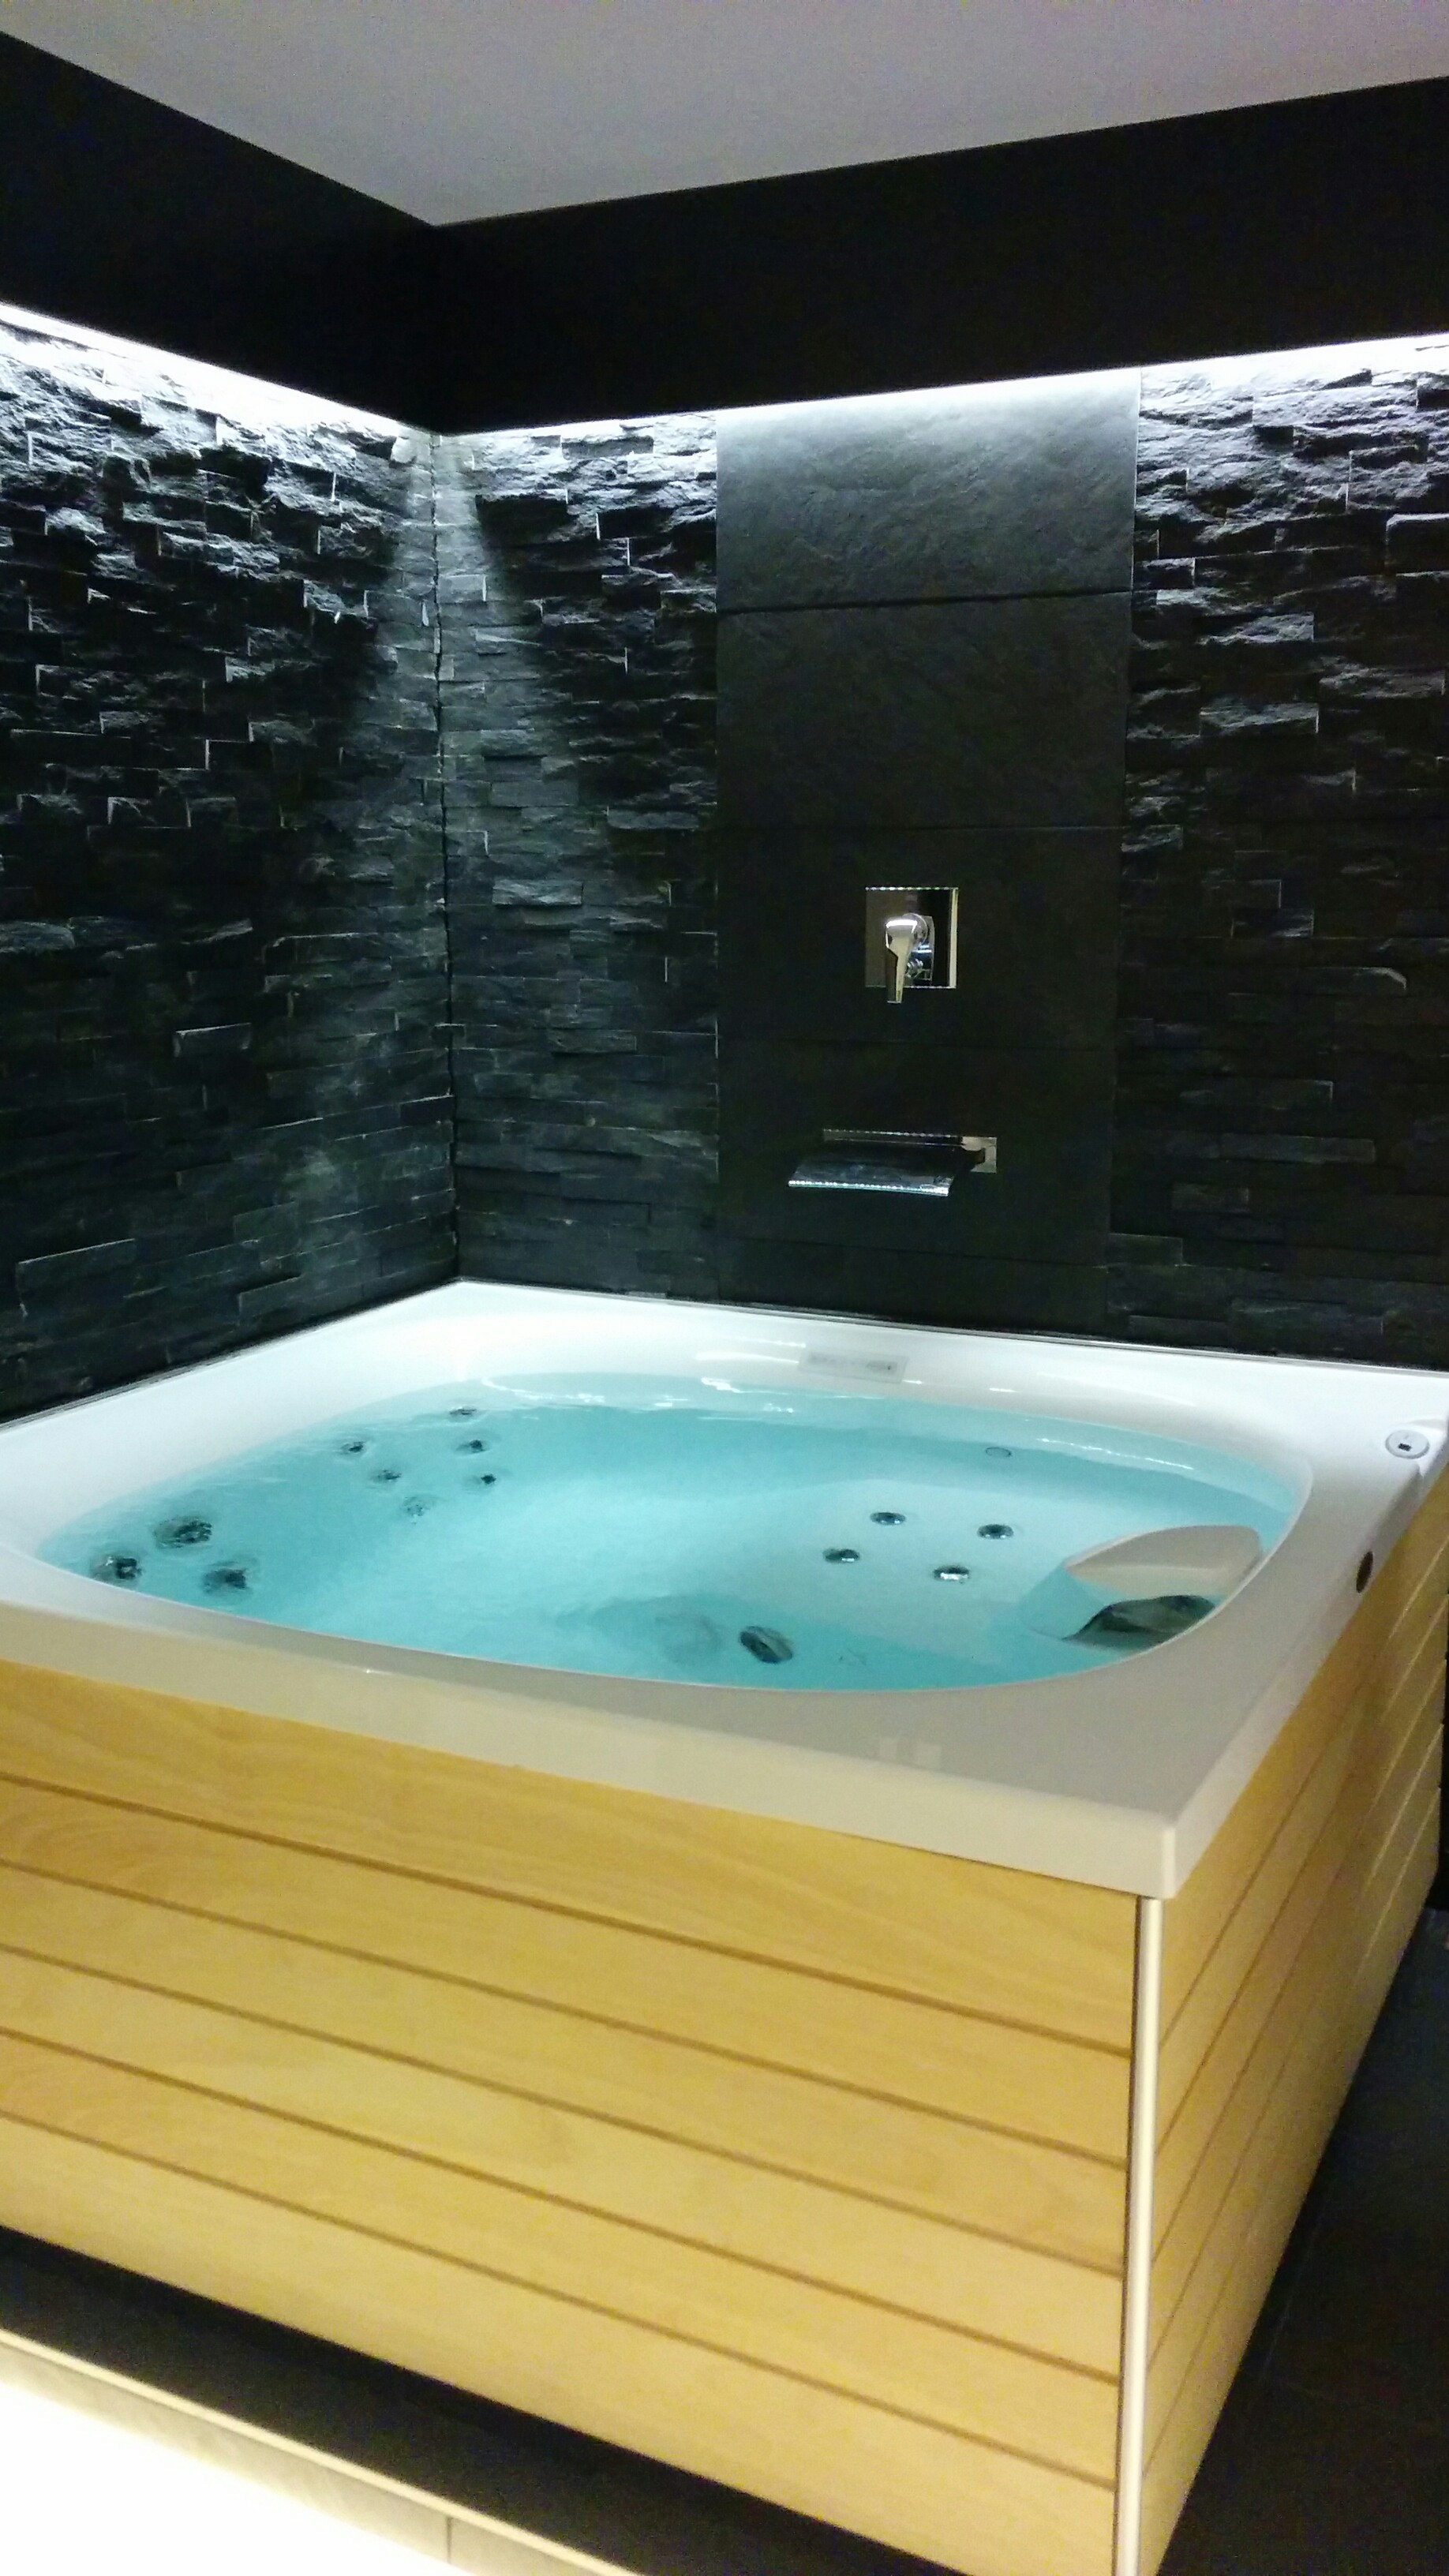 Whirlpool Garten 3 Personen Outdoor Whirlpool Plus Designerfliesen Jacuzzi Wellness At